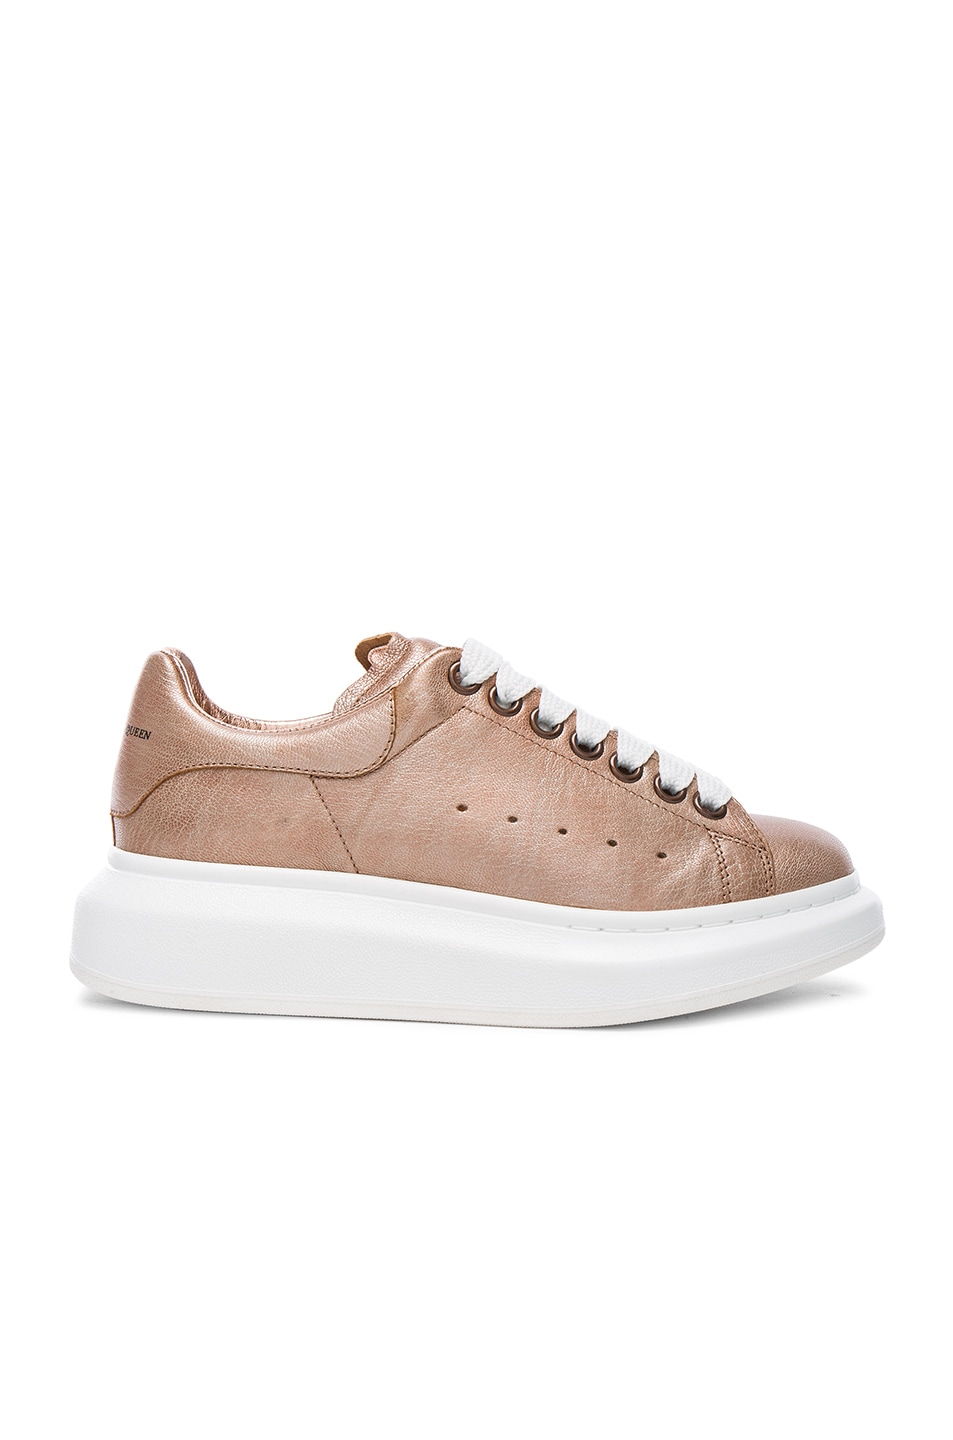 Image 1 of Alexander McQueen Platform Lace Up Leather Sneakers in Copper